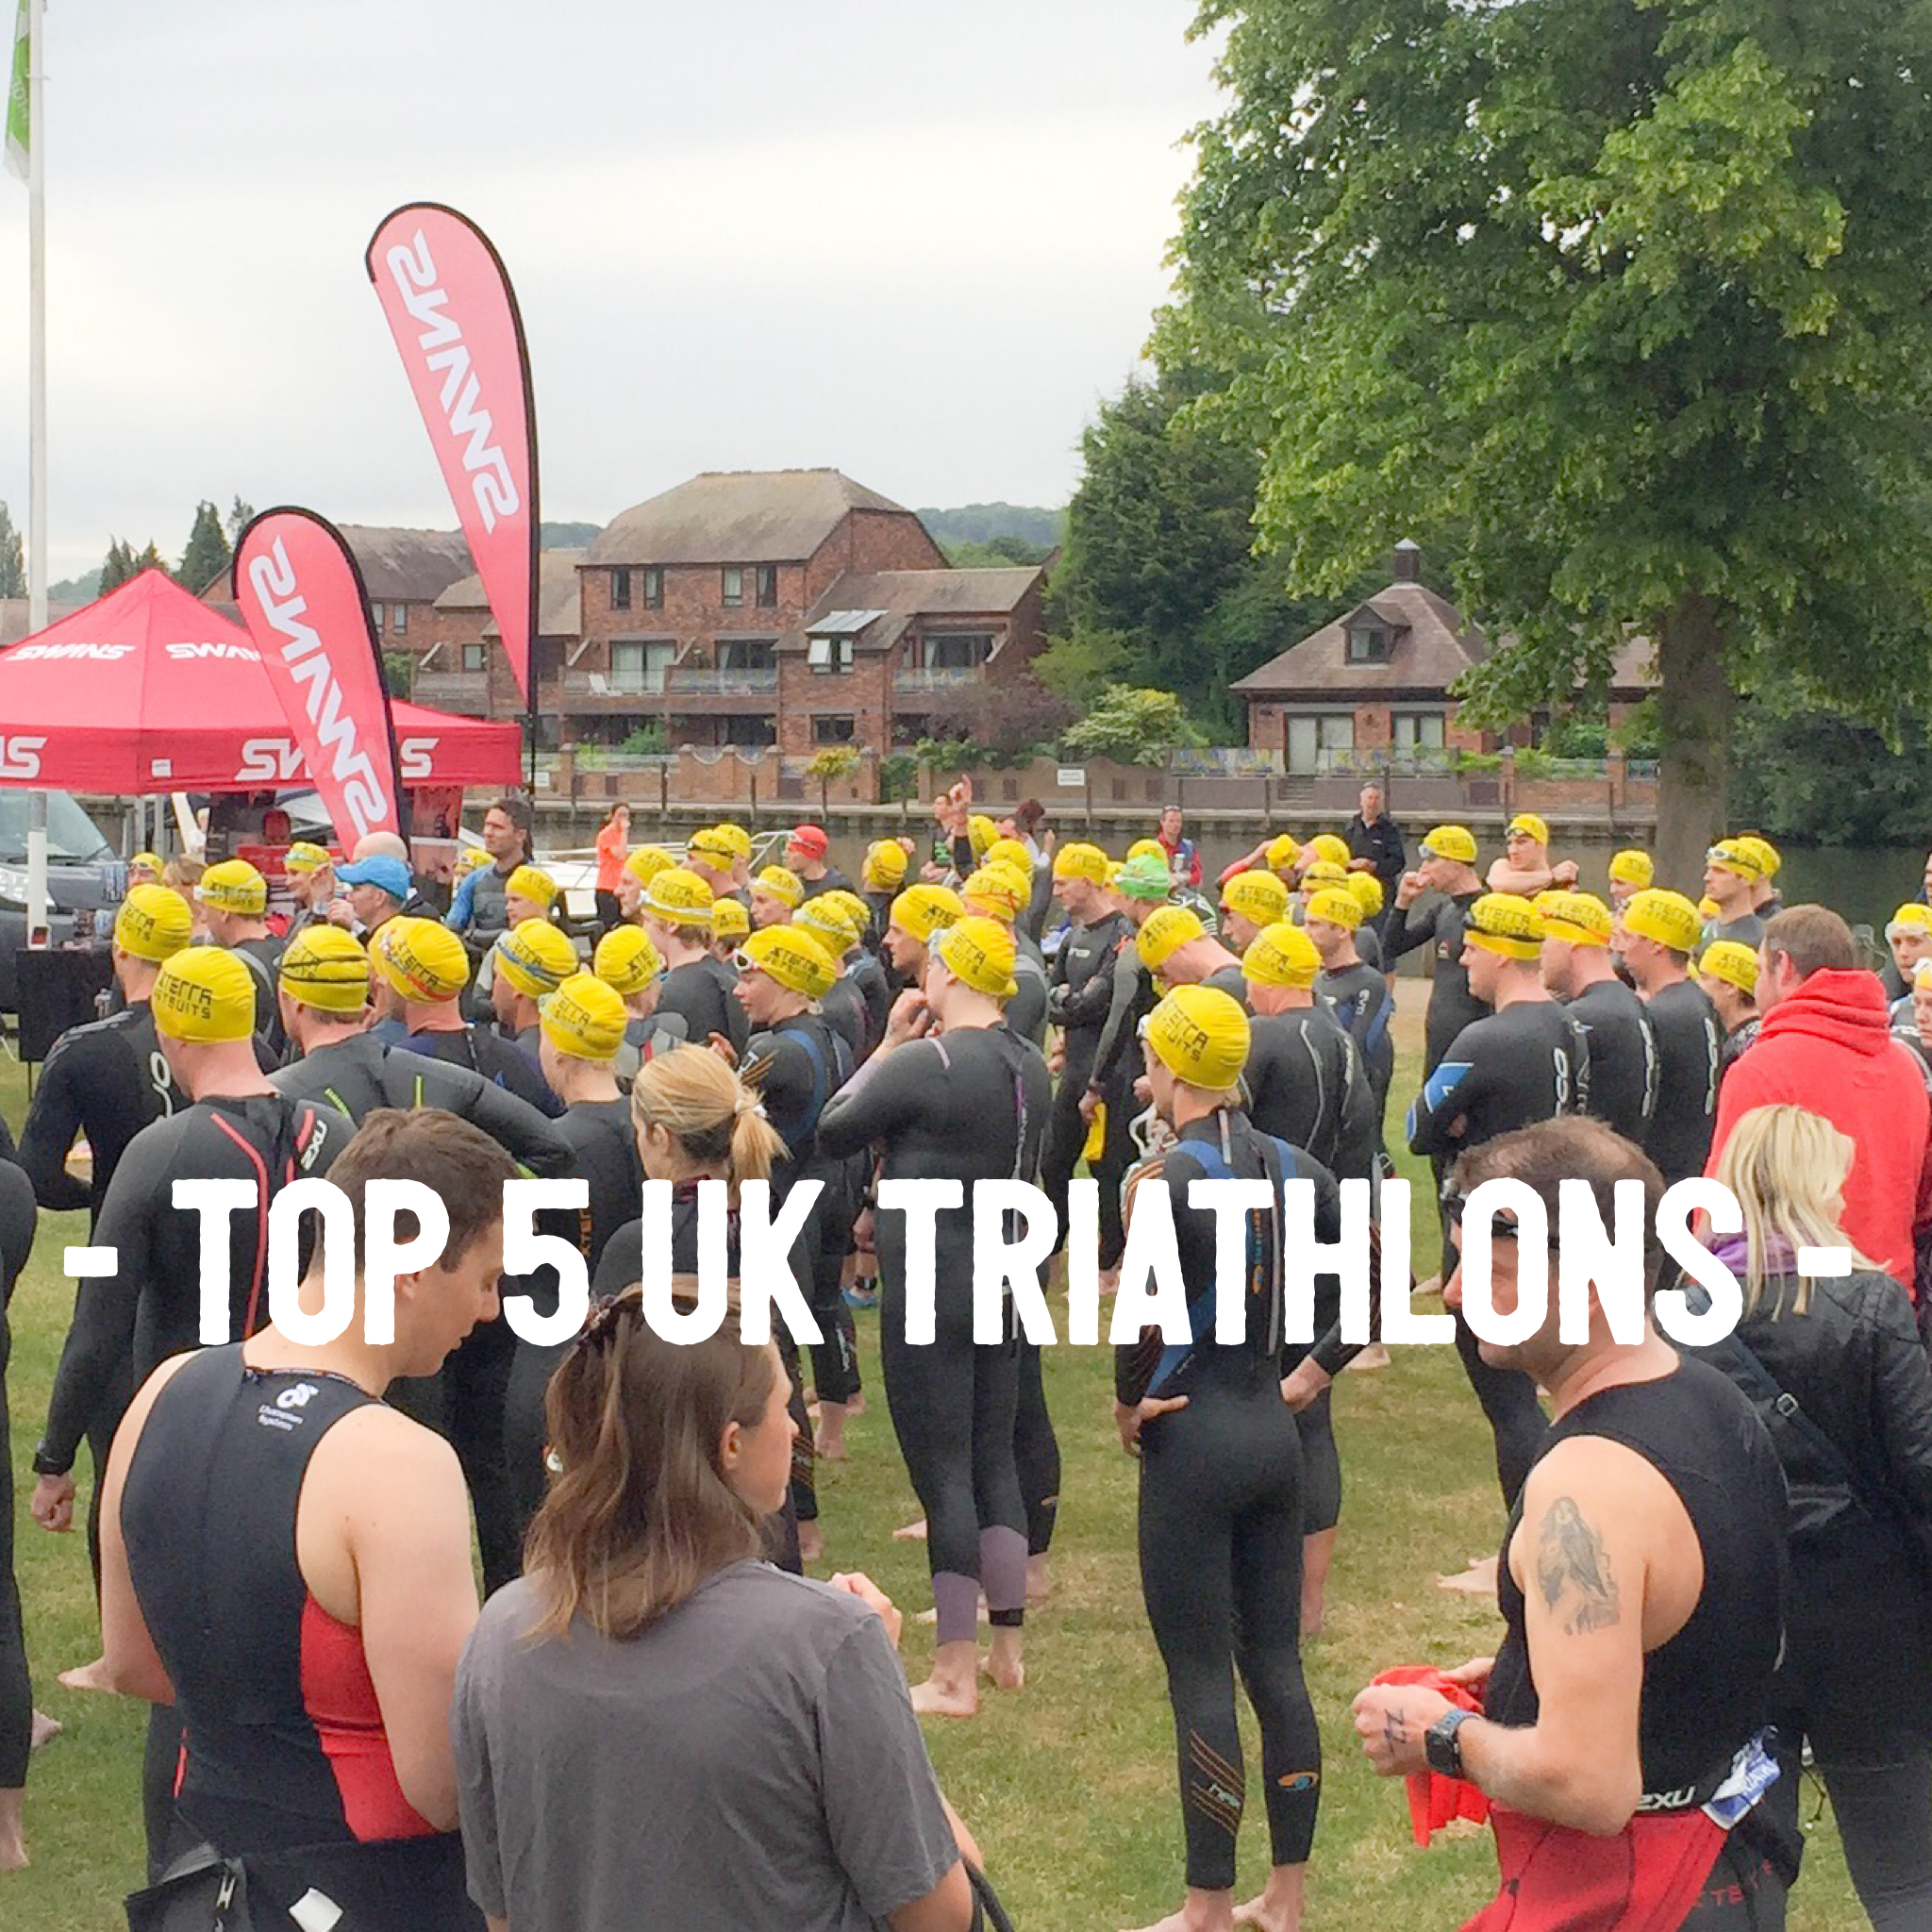 UK triathlons